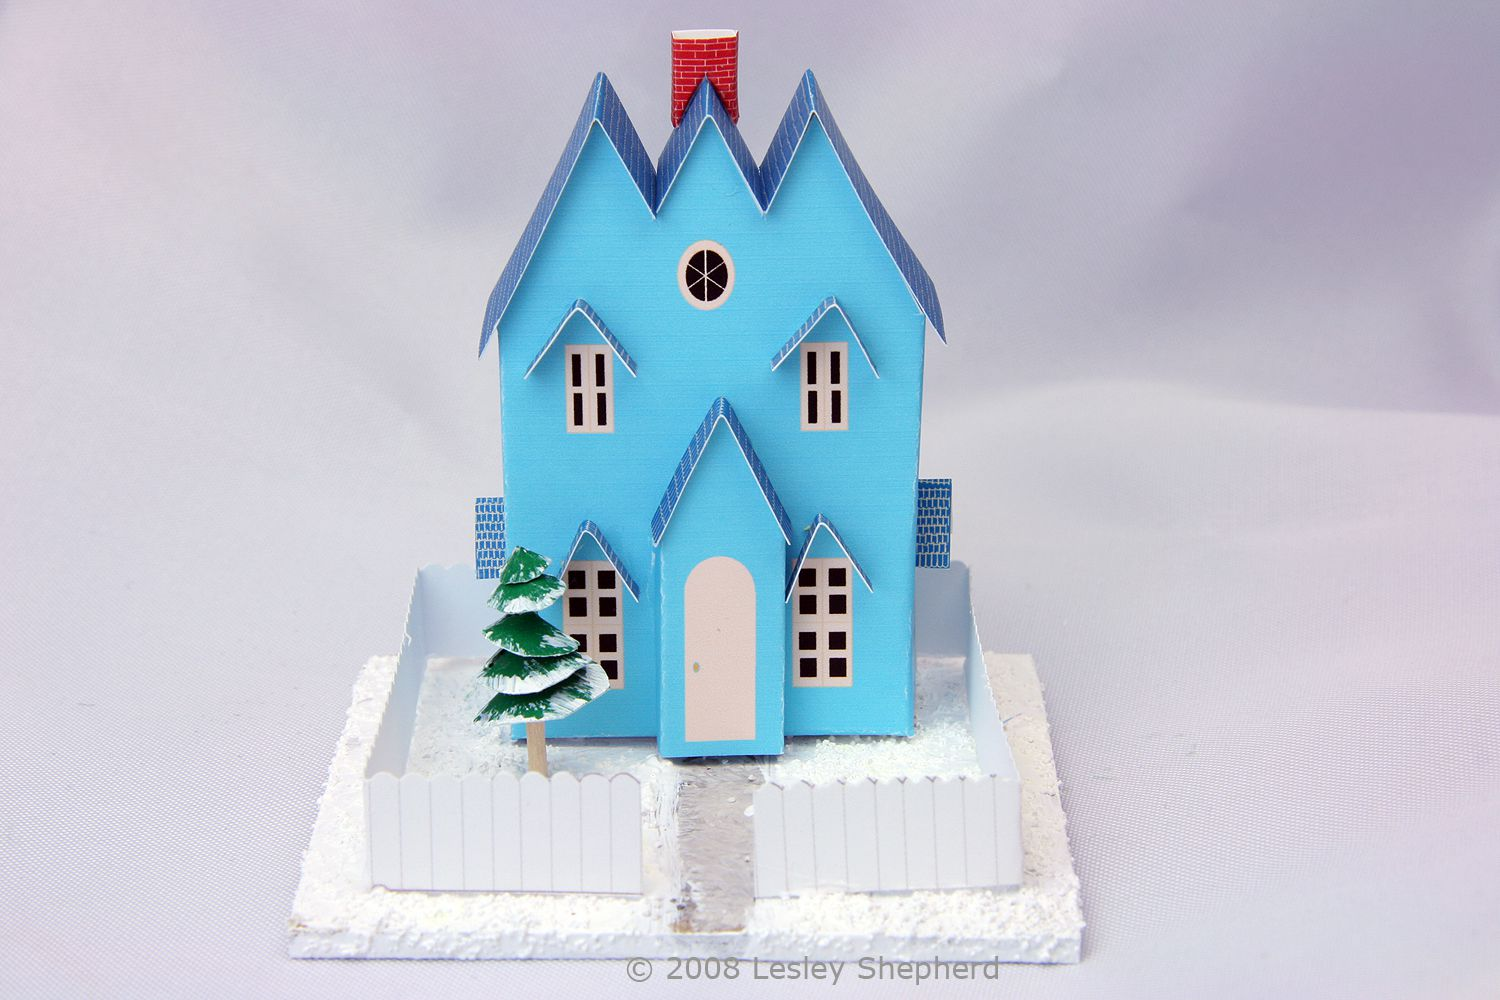 A miniature N scale Putz style cottage on a landscaped base with a tree, fence and snow.